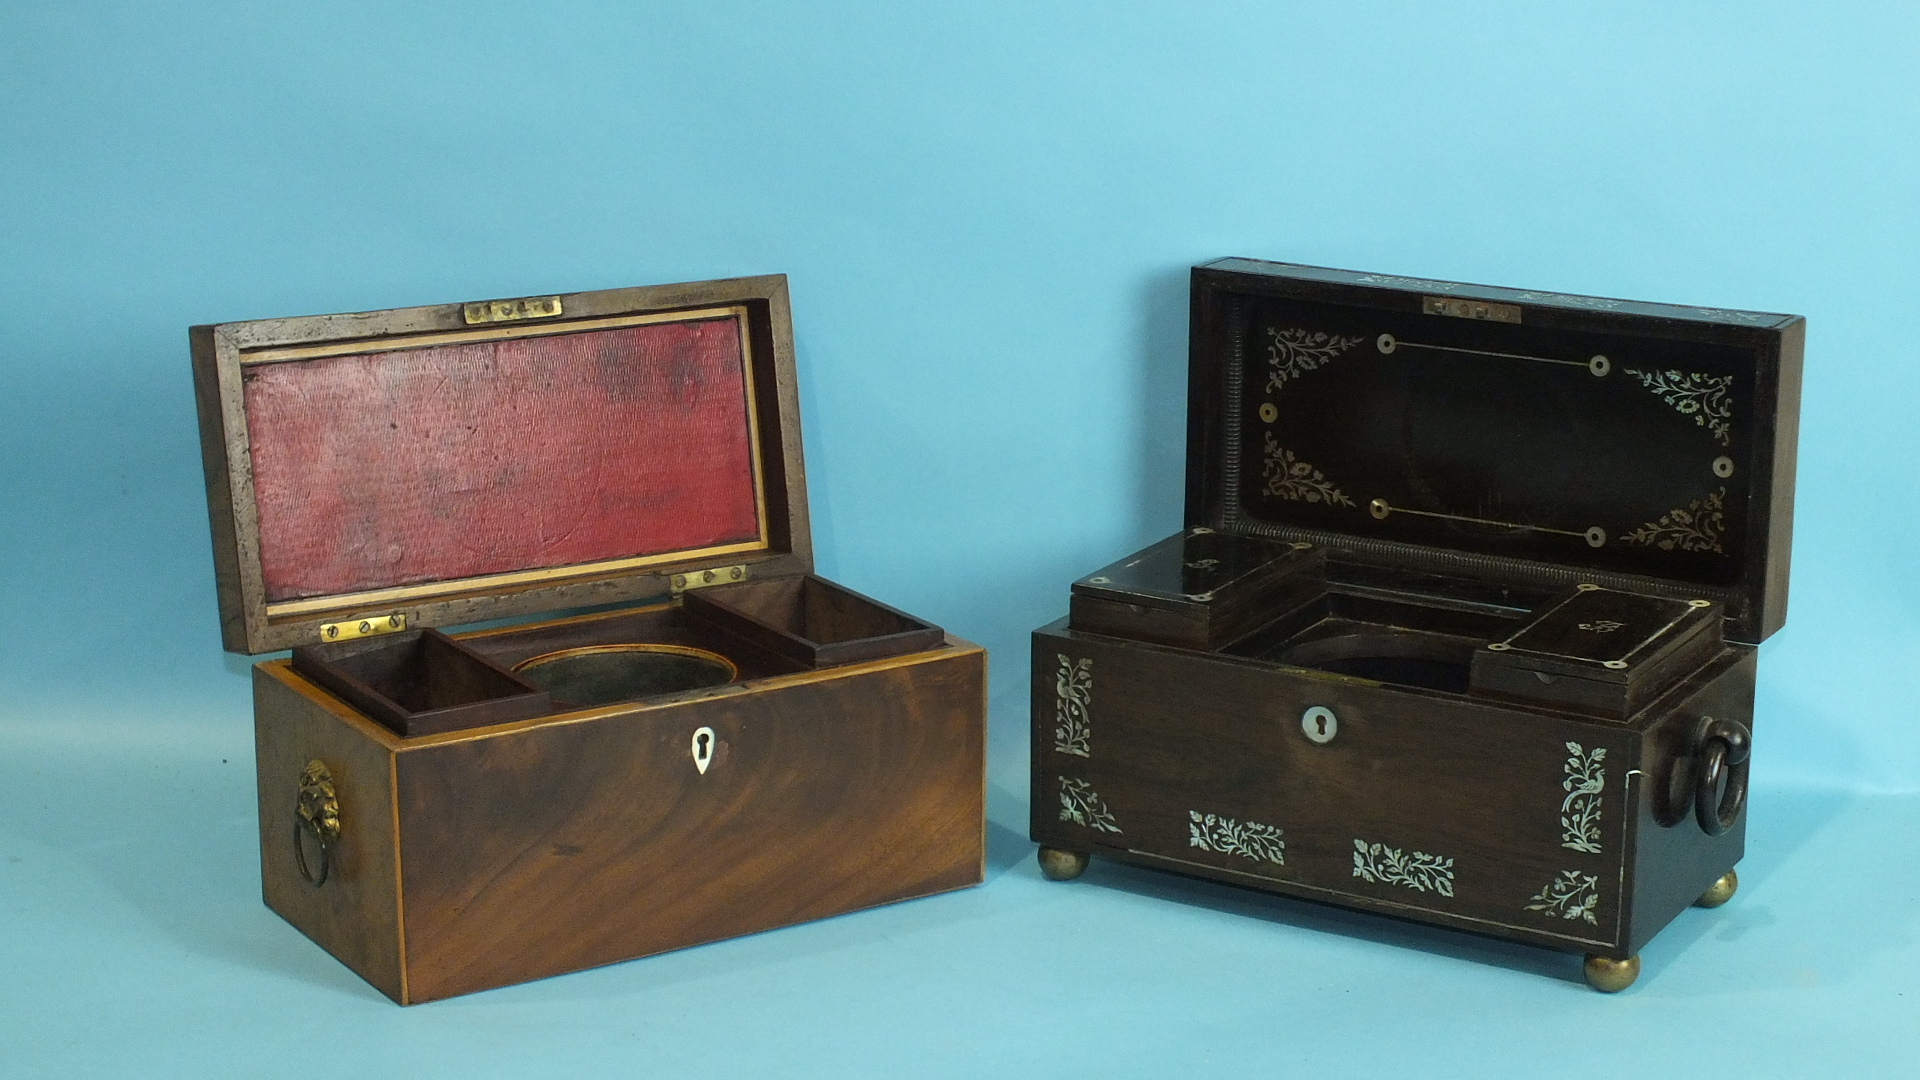 Lot 273 - A Regency rosewood and mother of pearl inlaid tea caddy of rectangular form, with wood carrying